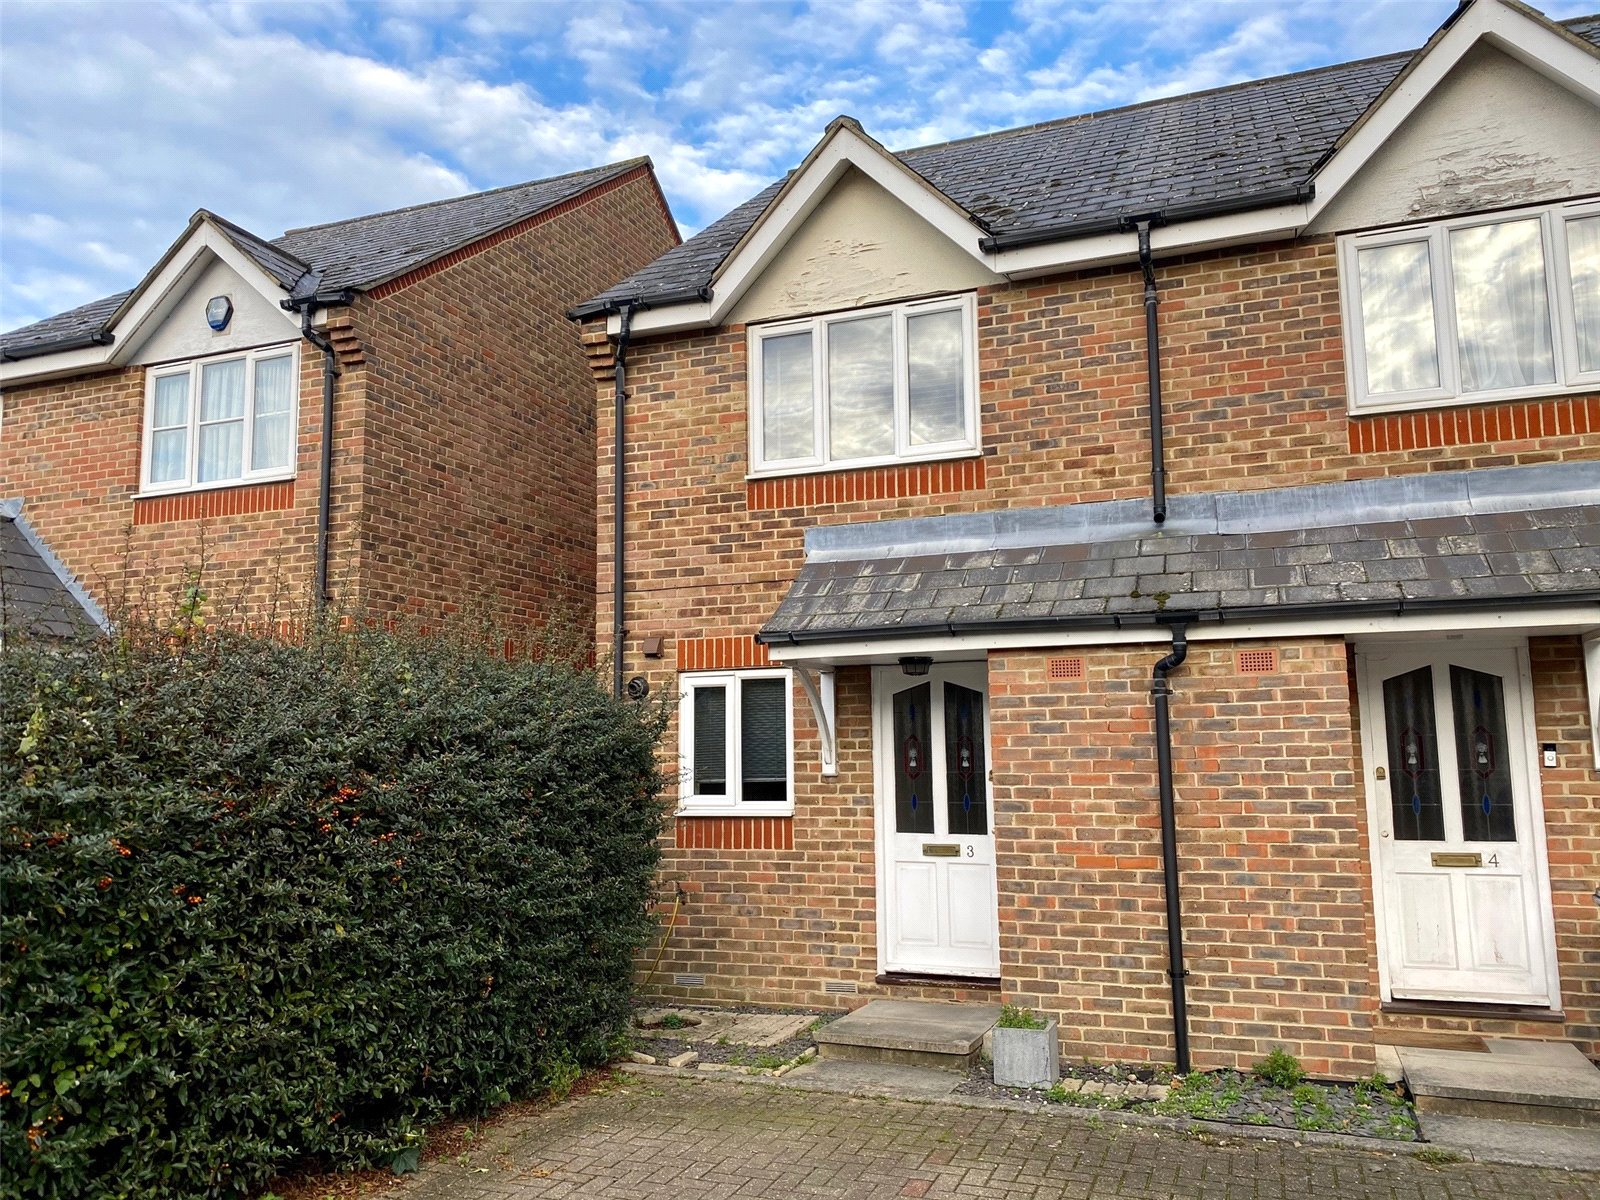 2 bed house to rent in New Southgate, N11 3PY, N11